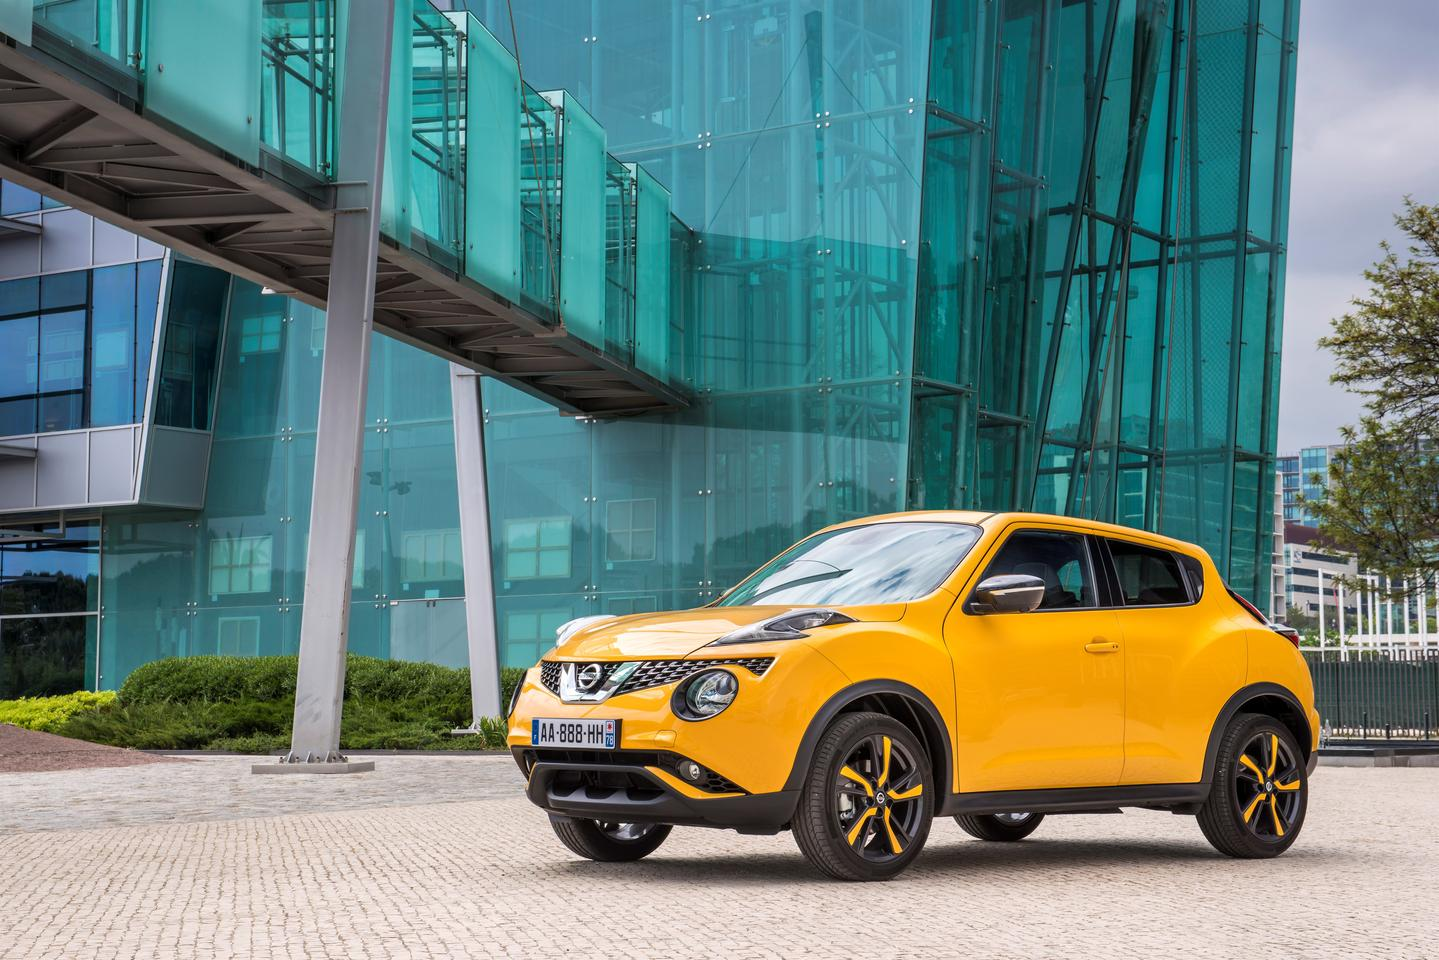 For 2015, the Juke's upper fender lights have taken design influences from the 370Z, Murano and Qashqai